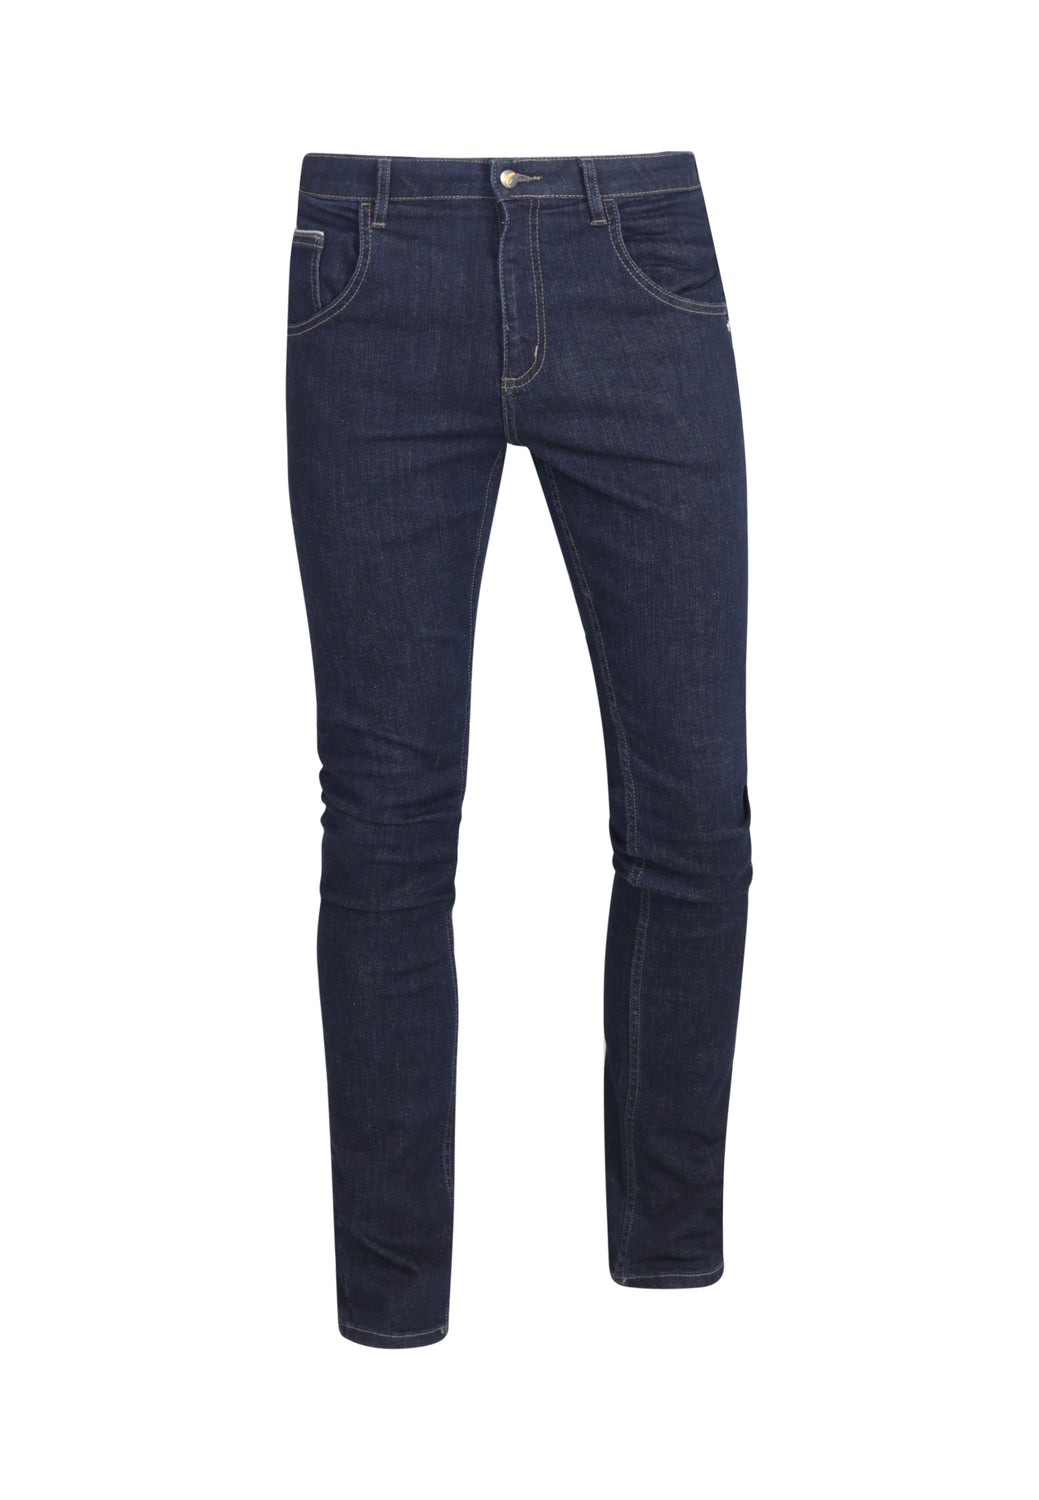 Organic Dean Slim Fit Jeans in Rinse Wash - Monkee Genes Organic Jeans Denim - Men's Slim Fit Monkee Genes Official  Monkee Genes Official